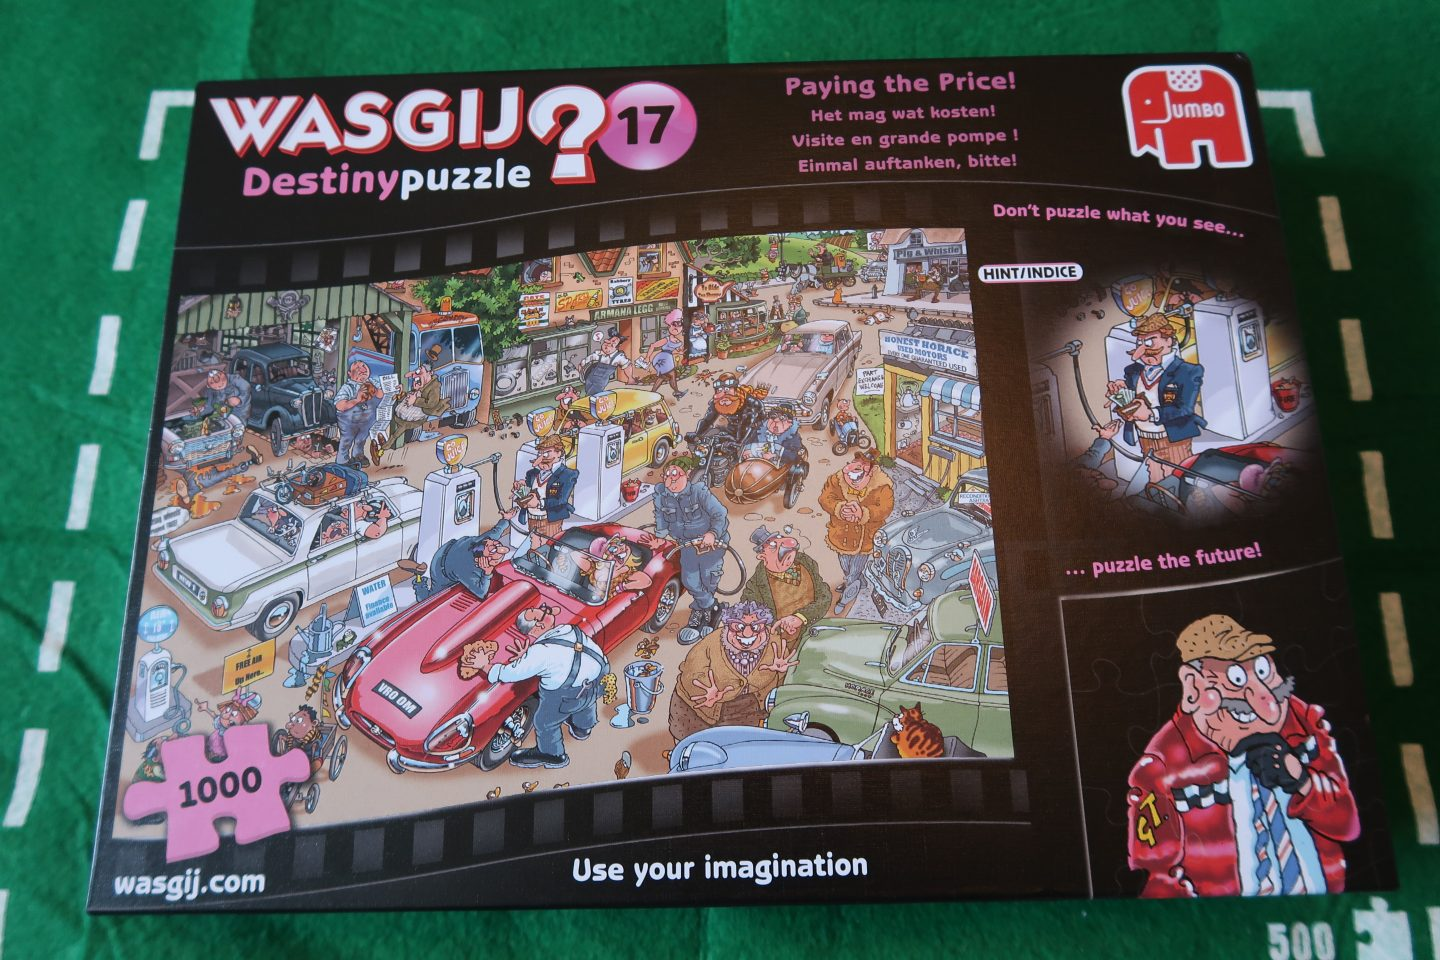 Wasgij Destiny 17 'Paying The Price' Puzzle {Review & Giveaway}